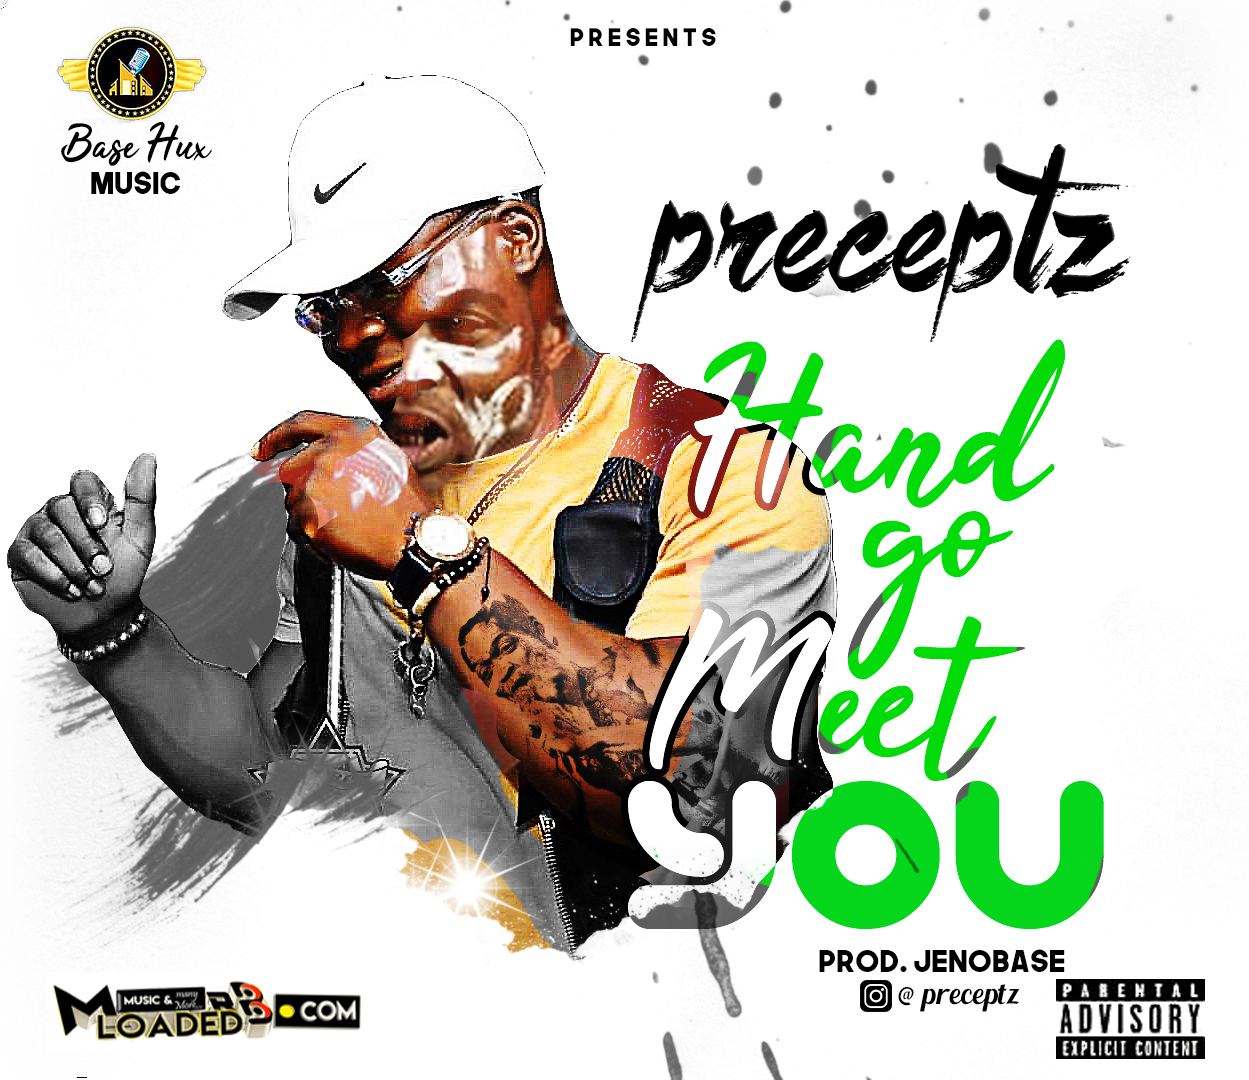 [Fanlink] Preceptz – Hand go meet you